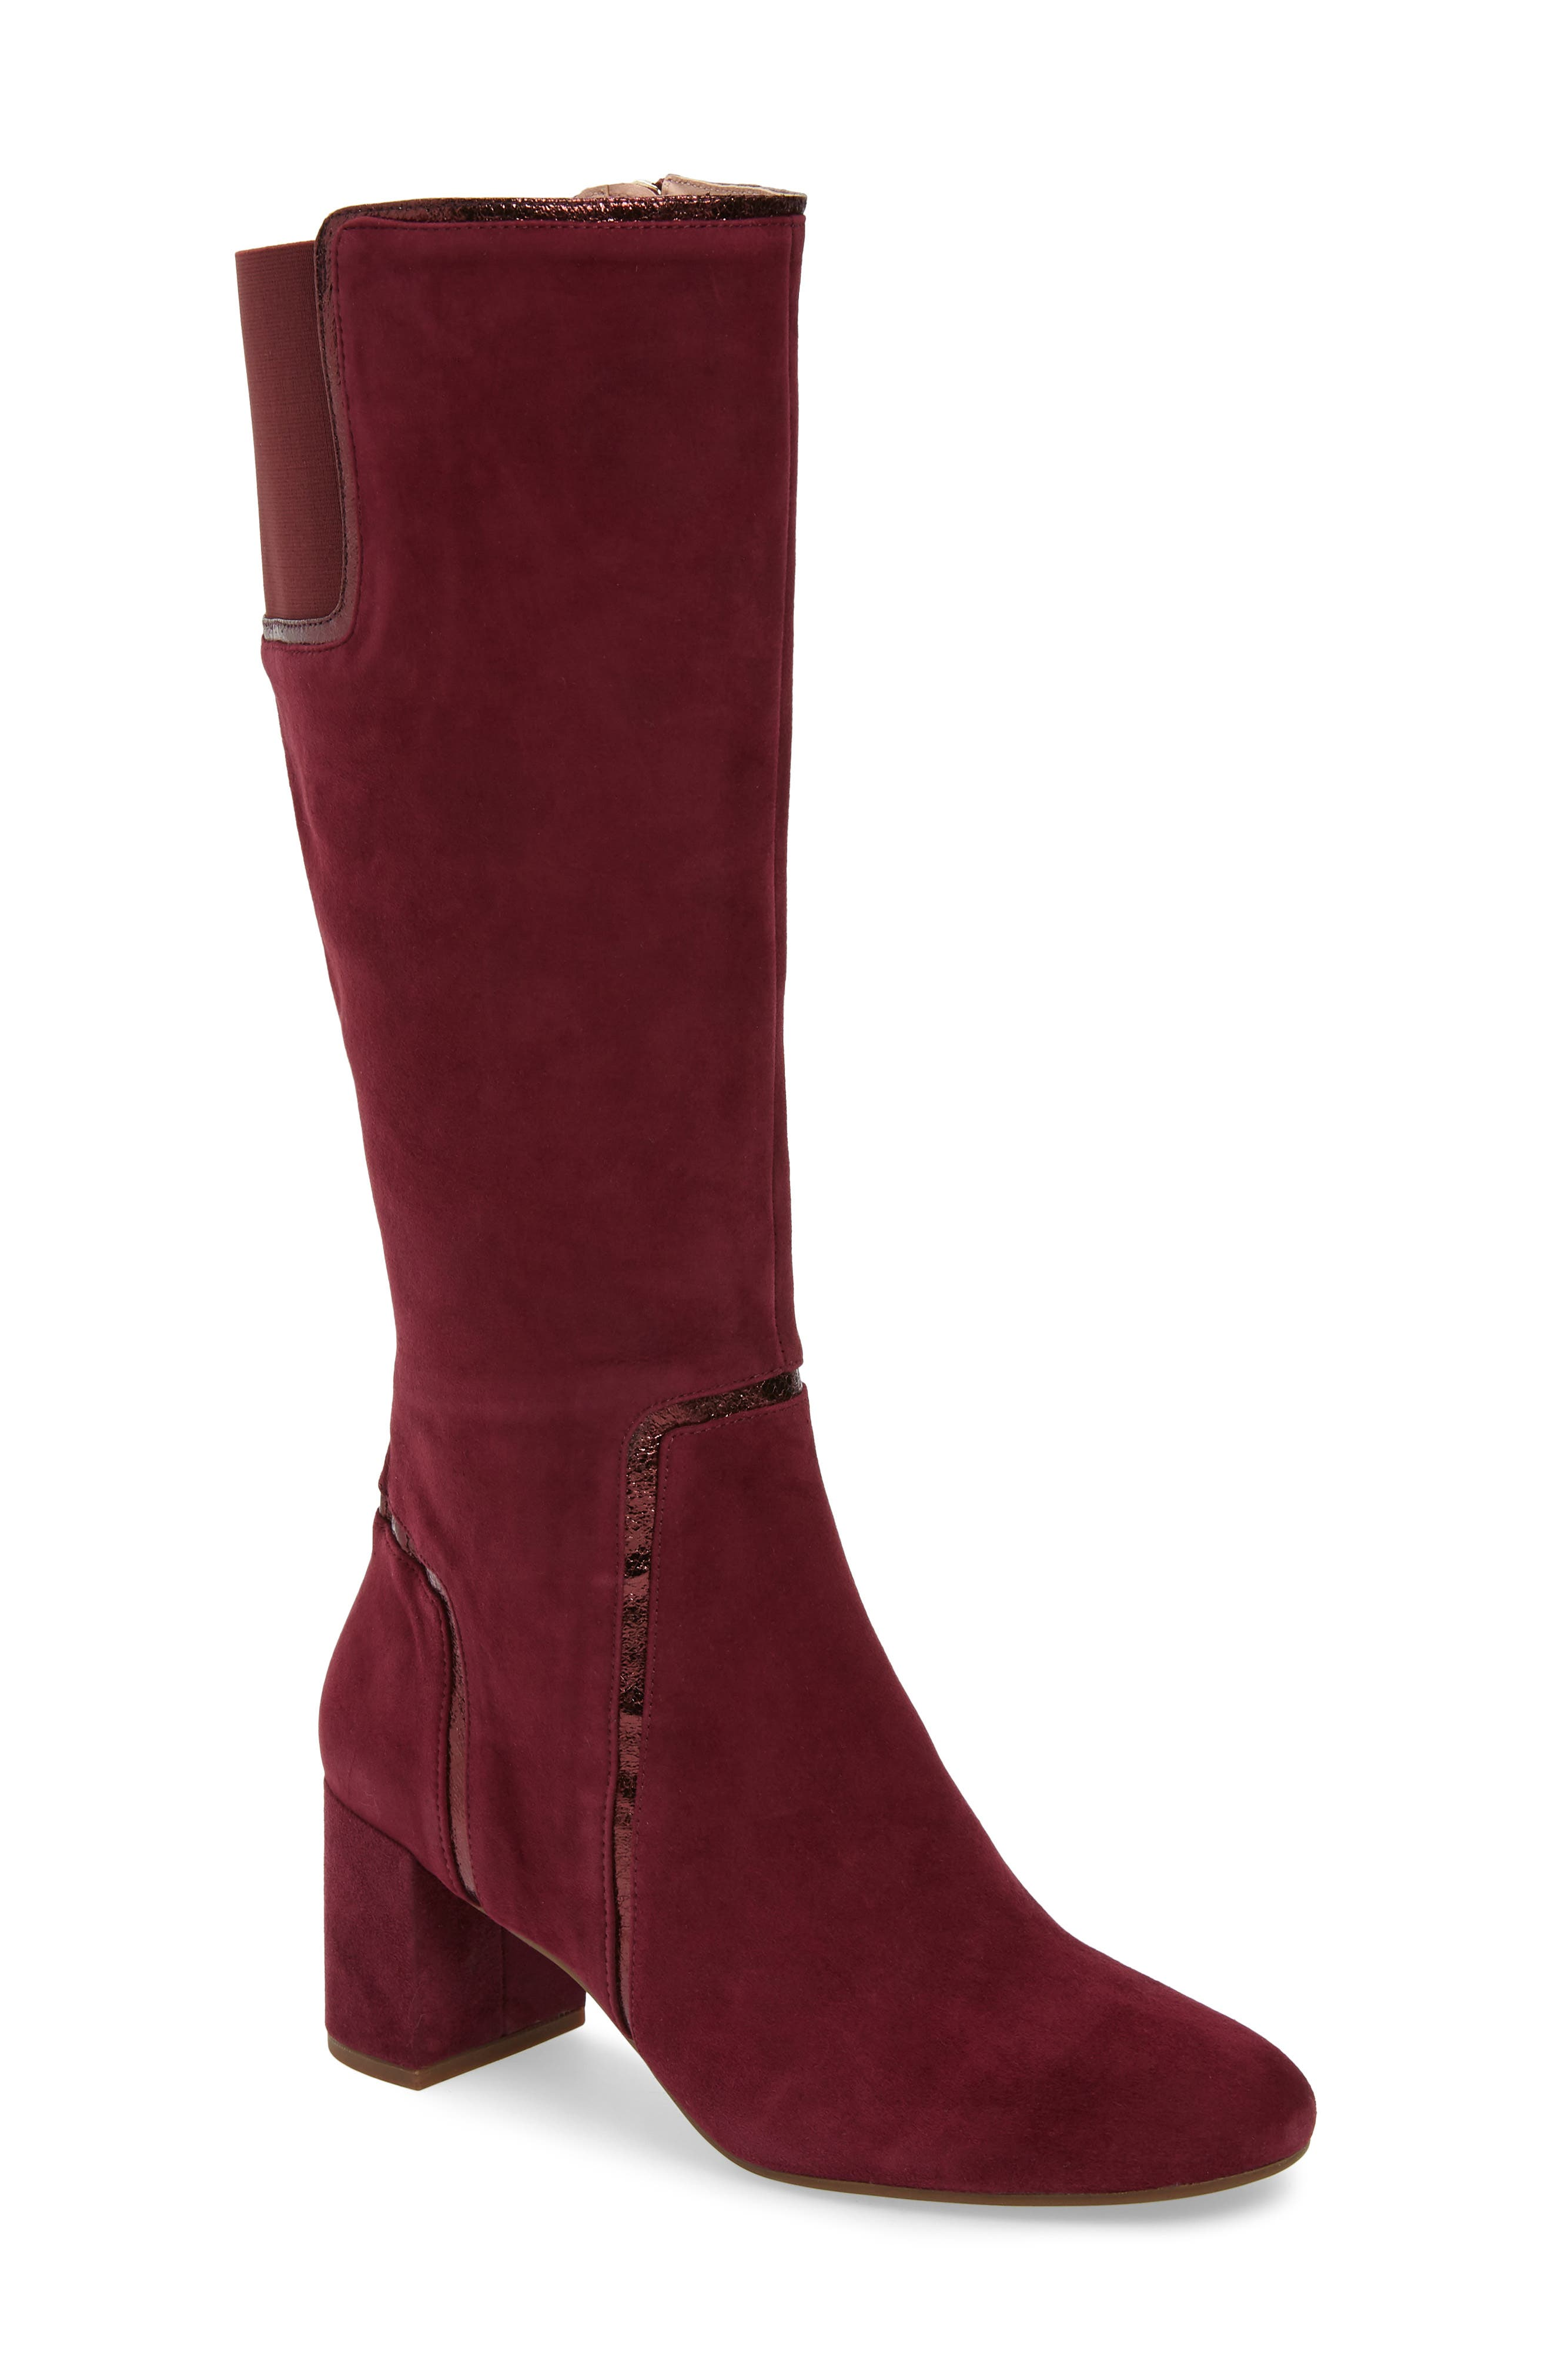 TARYN ROSE, Charlee Knee High Boot, Main thumbnail 1, color, FIG SUEDE